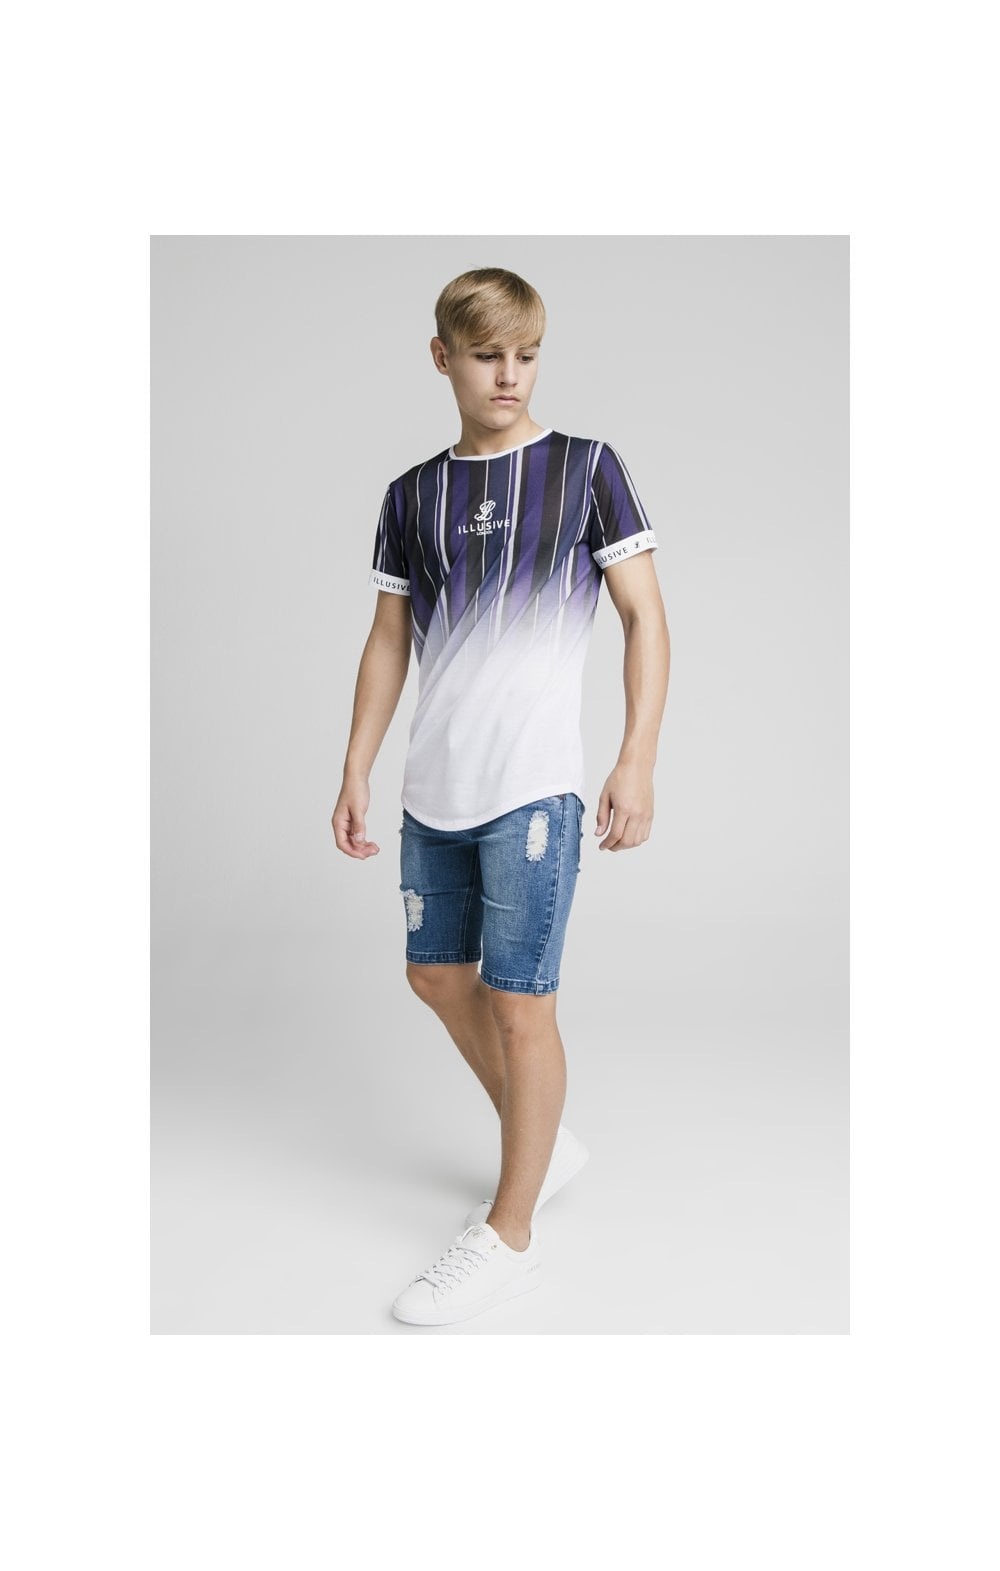 Load image into Gallery viewer, Illusive London Fade Stripe Tech Tee - Navy, Purple, Grey & White (3)